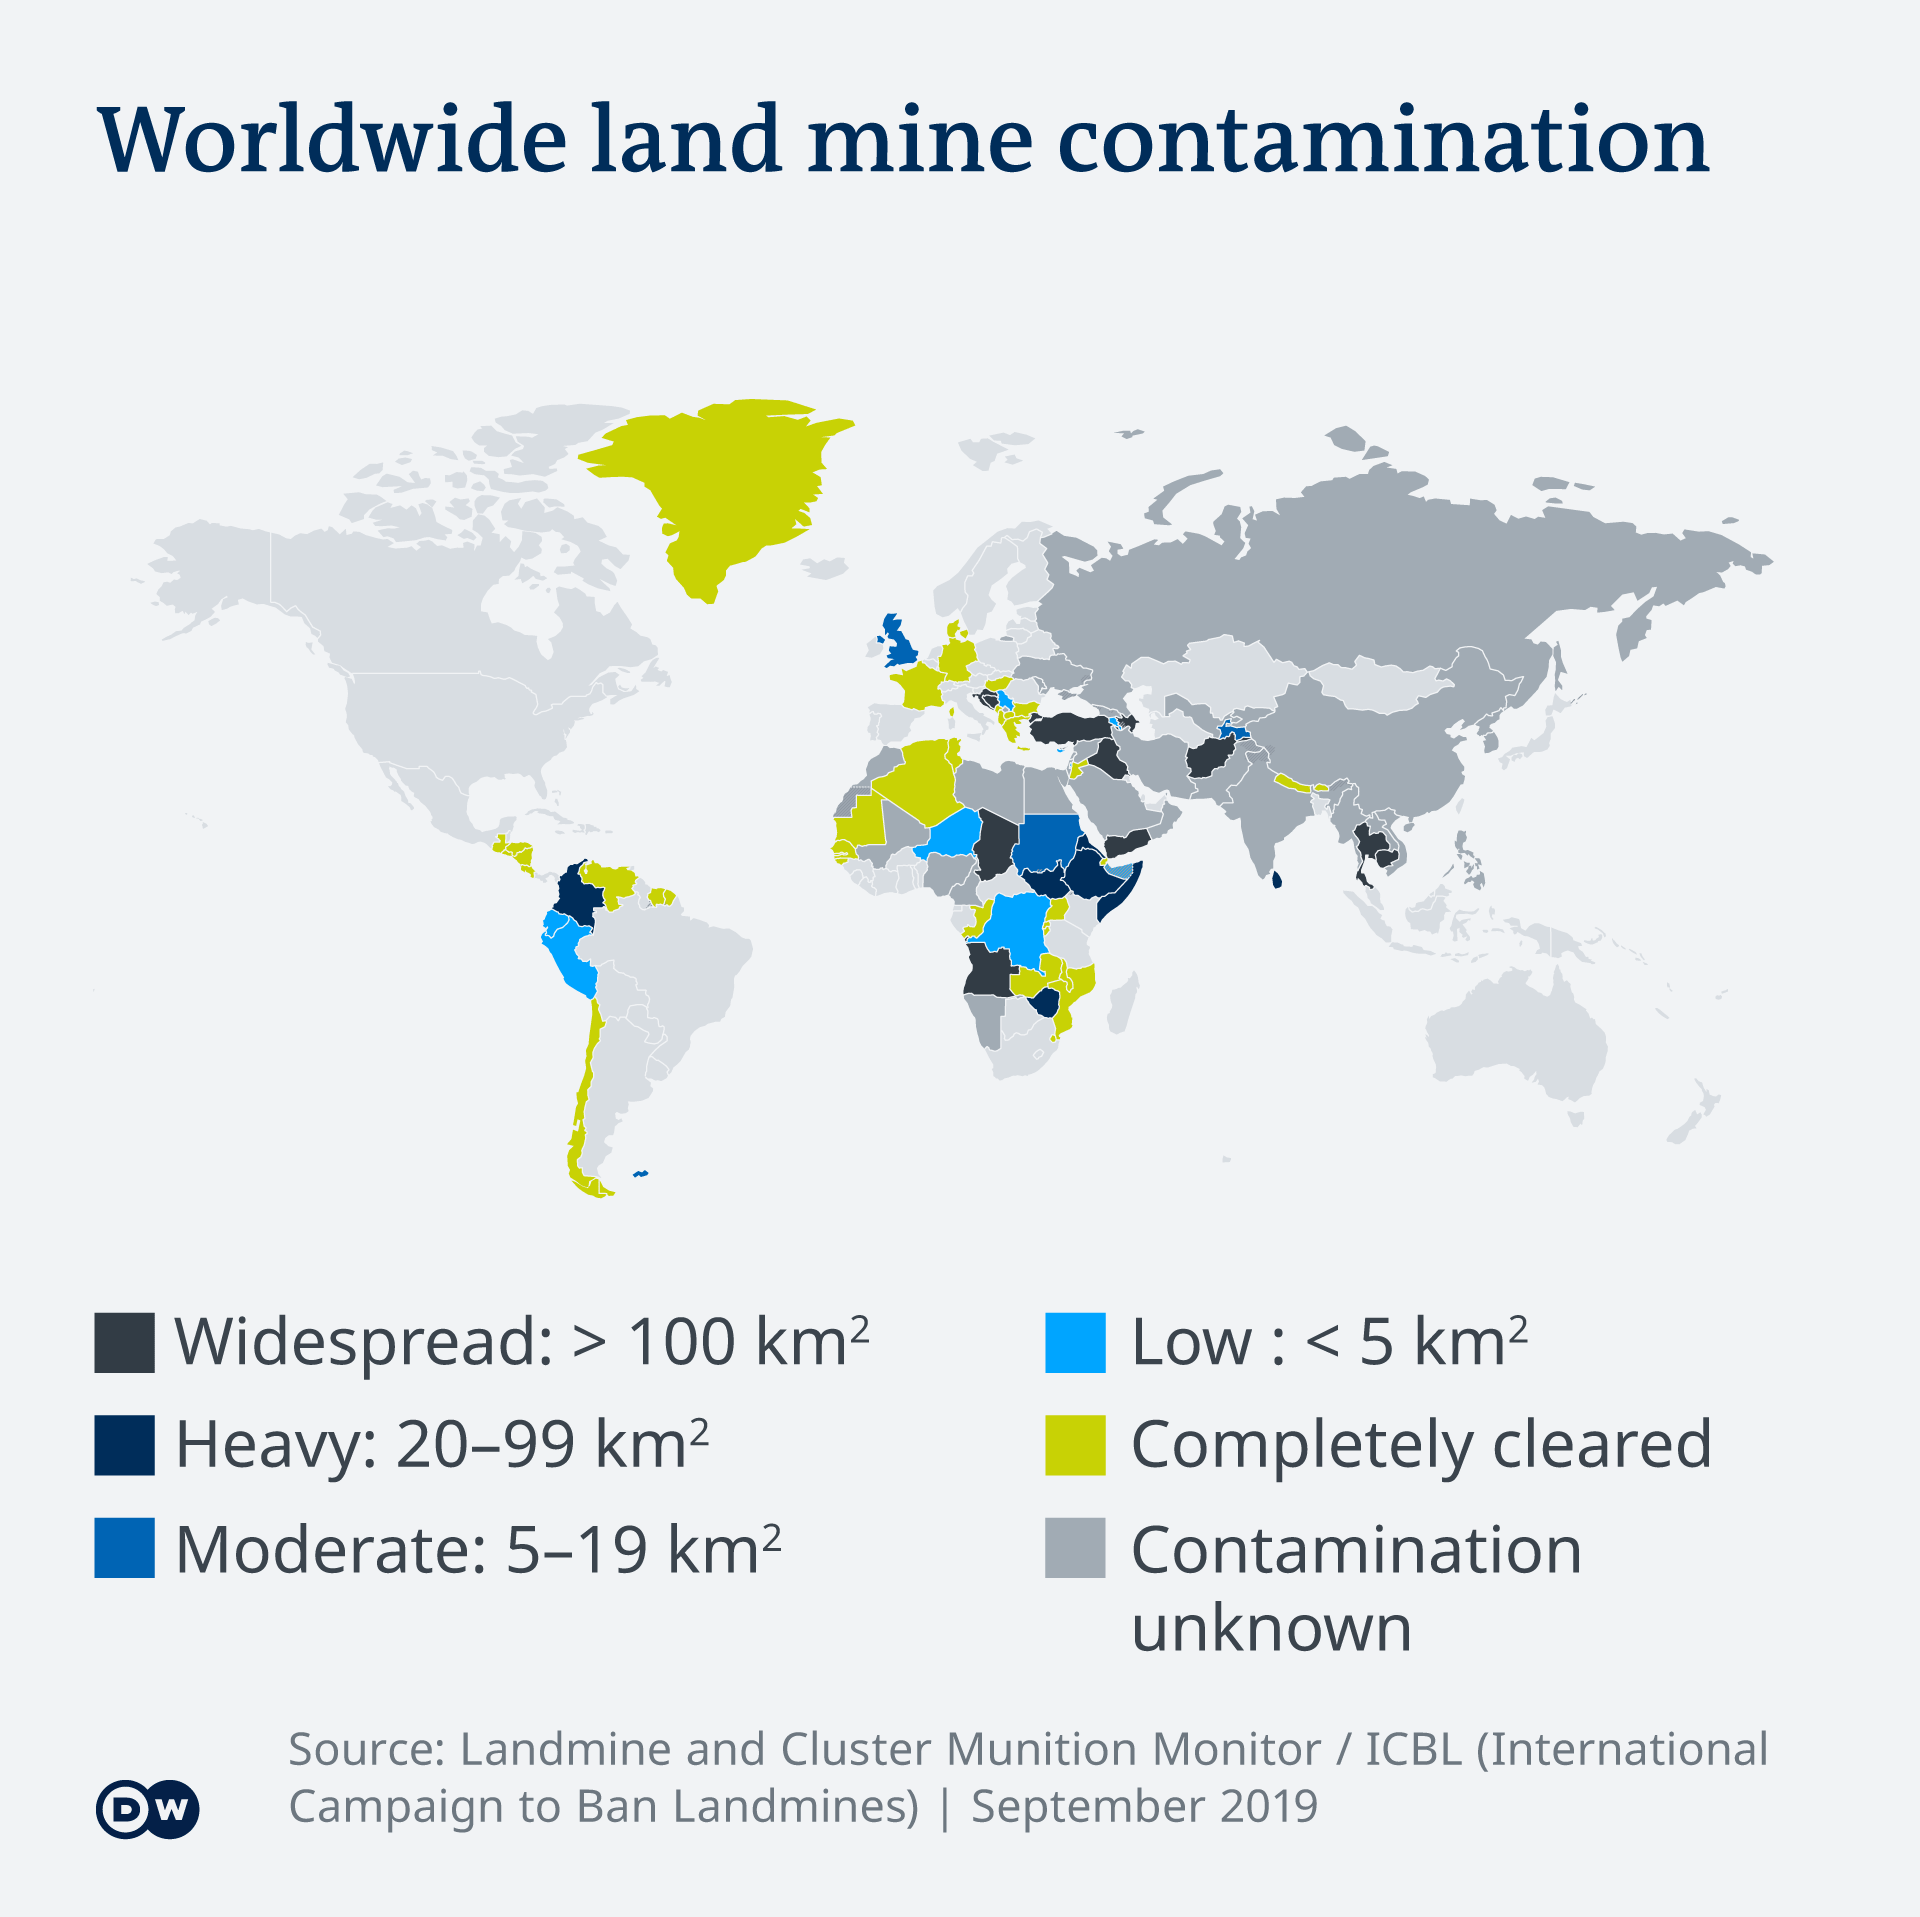 Infographic showing worldwide land mine contamination in 2019